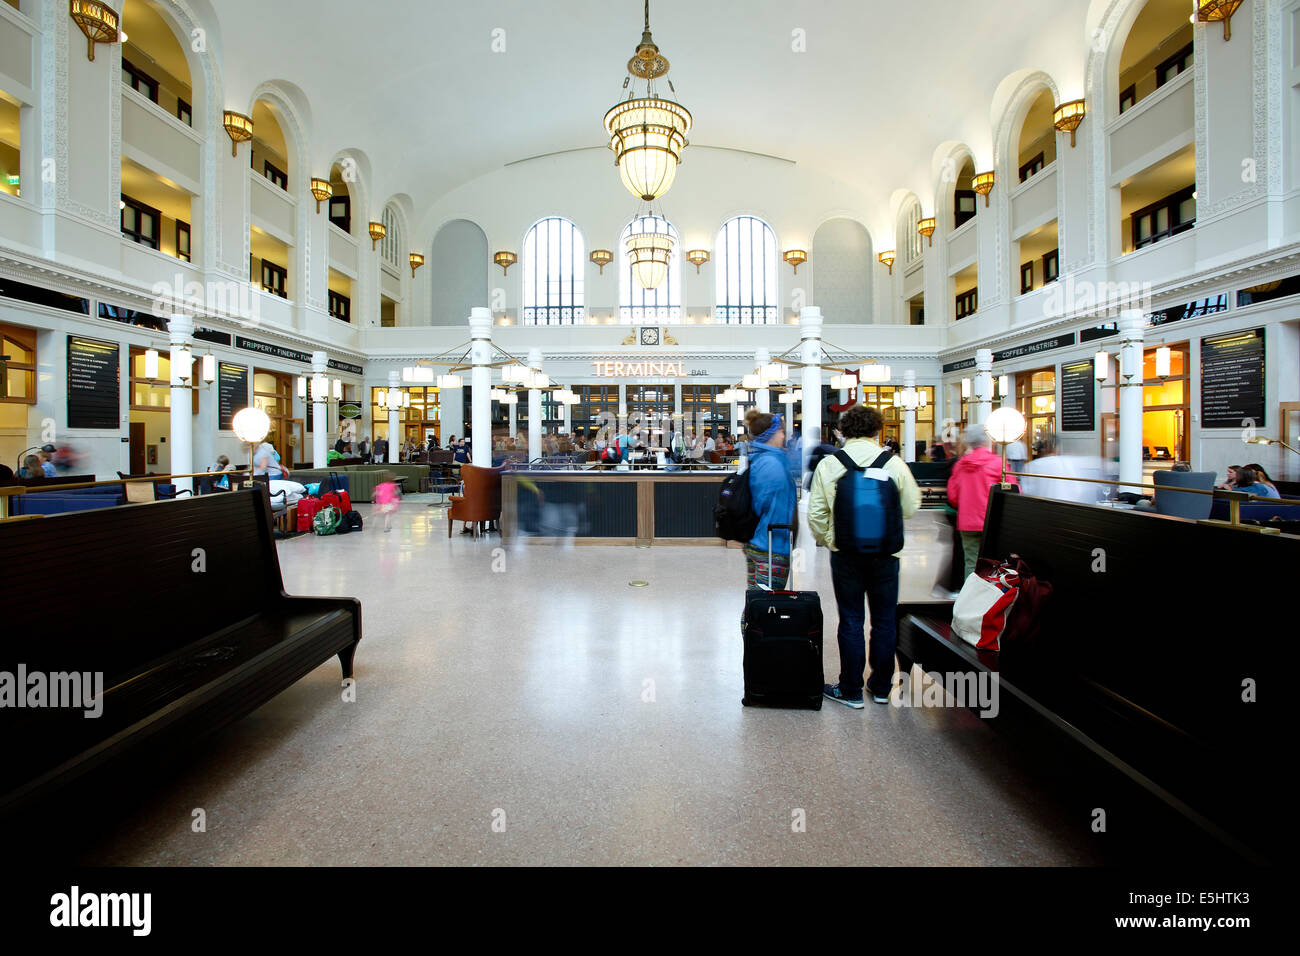 Group of travelers in terminal (Crawford Hotel, upper floors), Union Station, Denver, Colorado USA - Stock Image